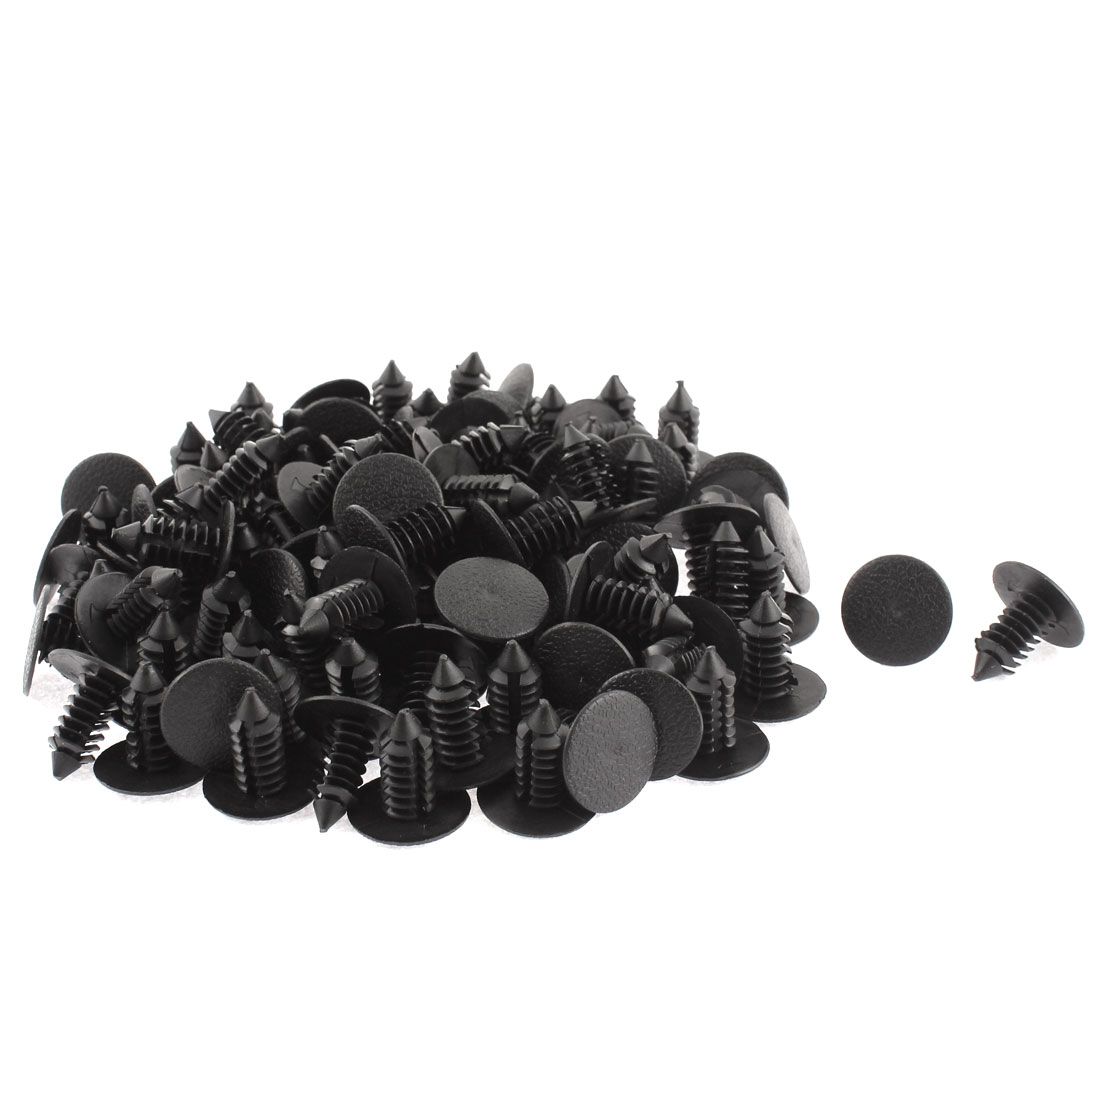 9mm x 8mm Black Plastic Rivet Fastener Fender Car Bumper Push Clip 100pcs